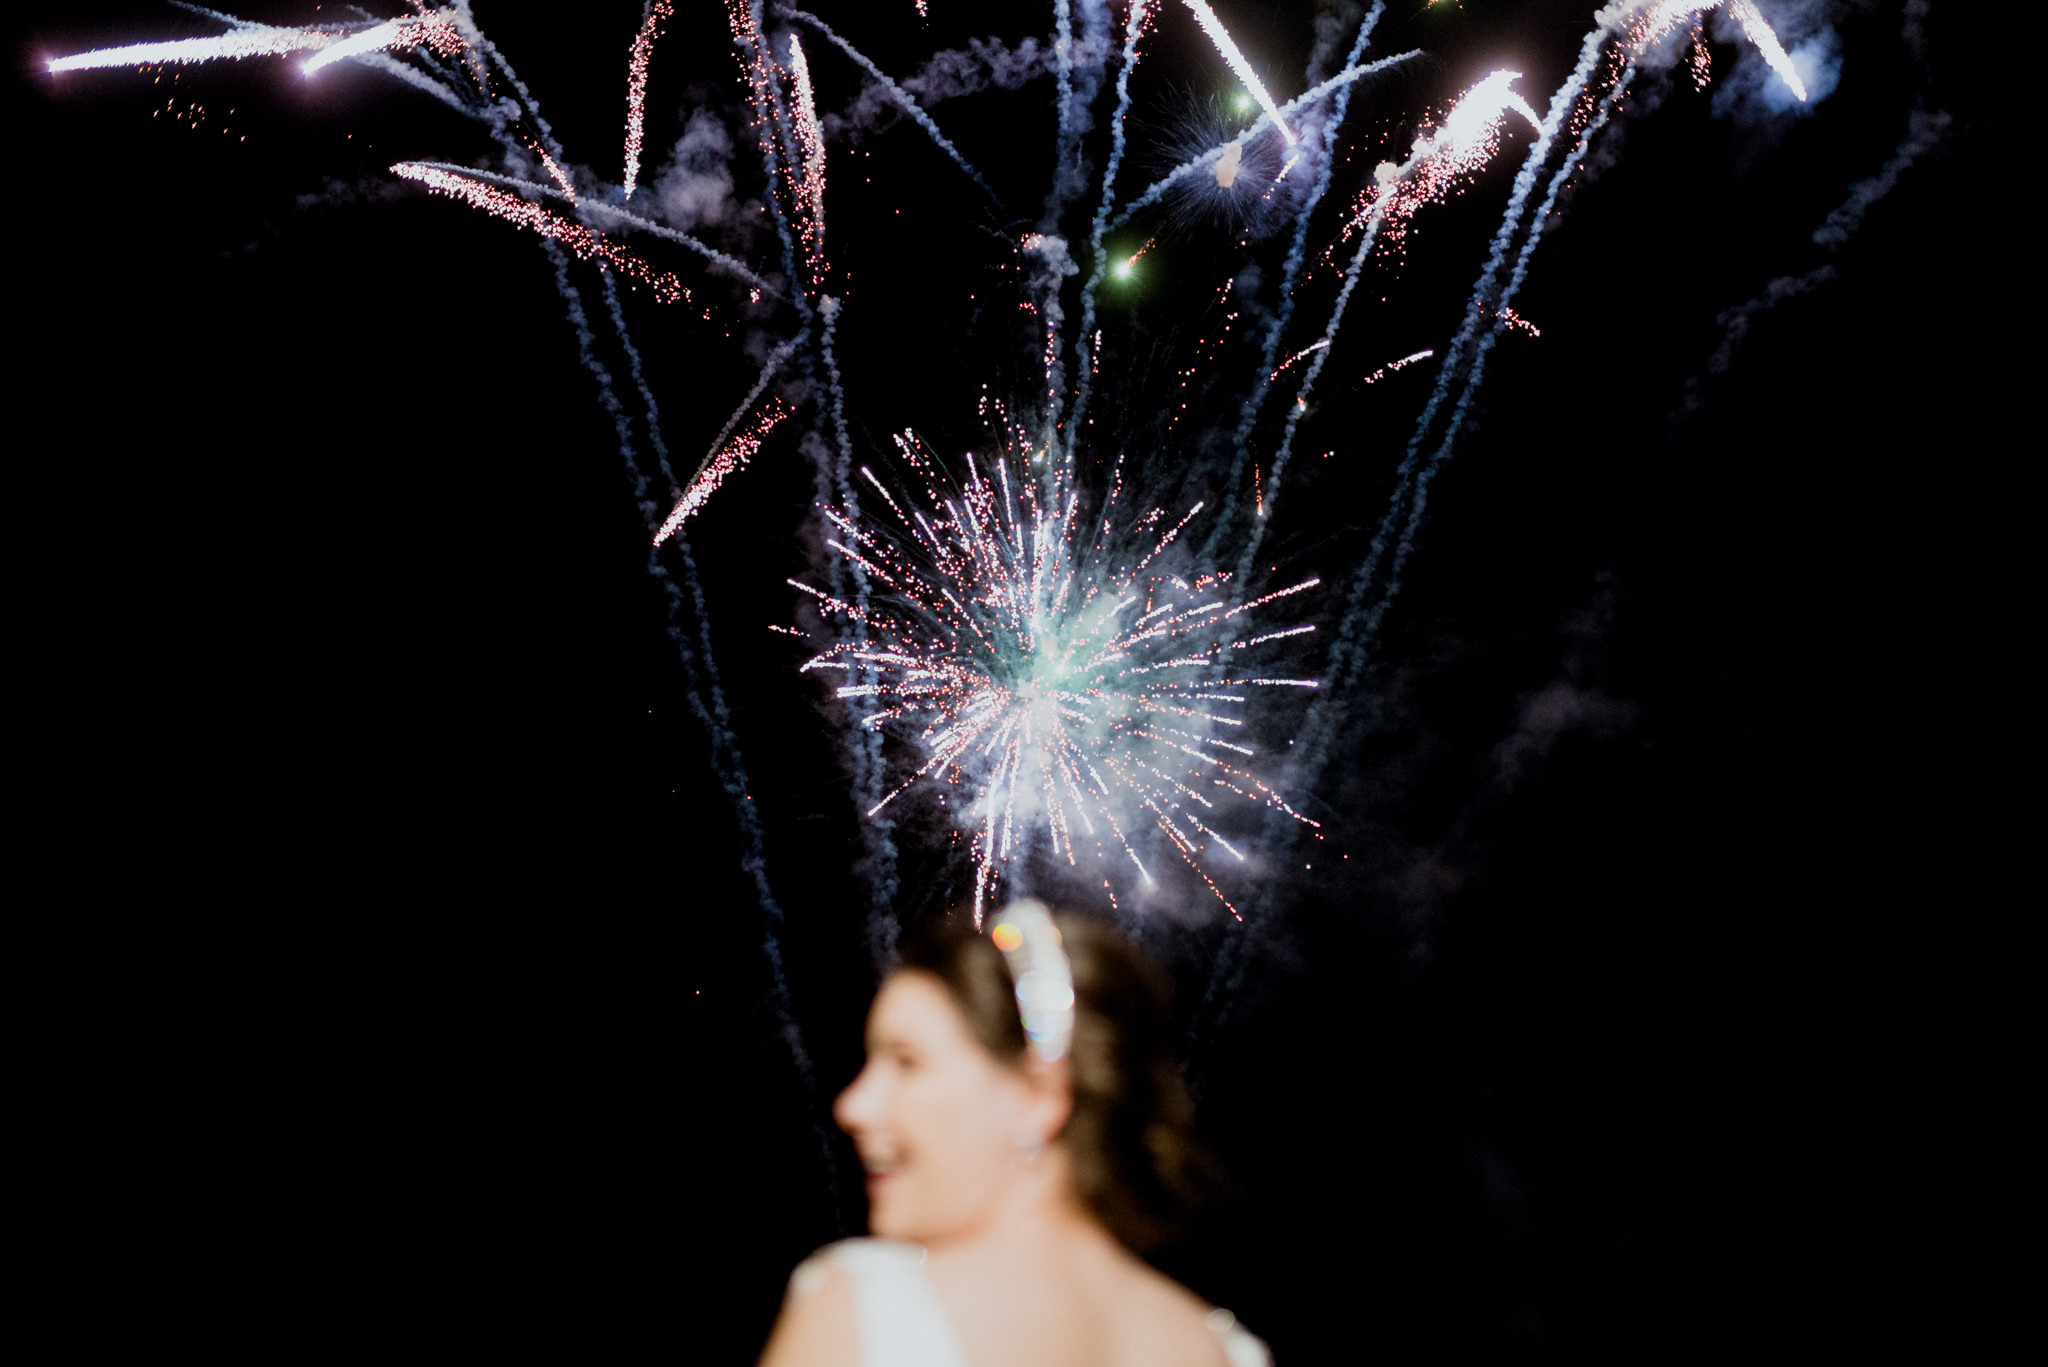 A small fireworks display at night with a bride looking on and laughing